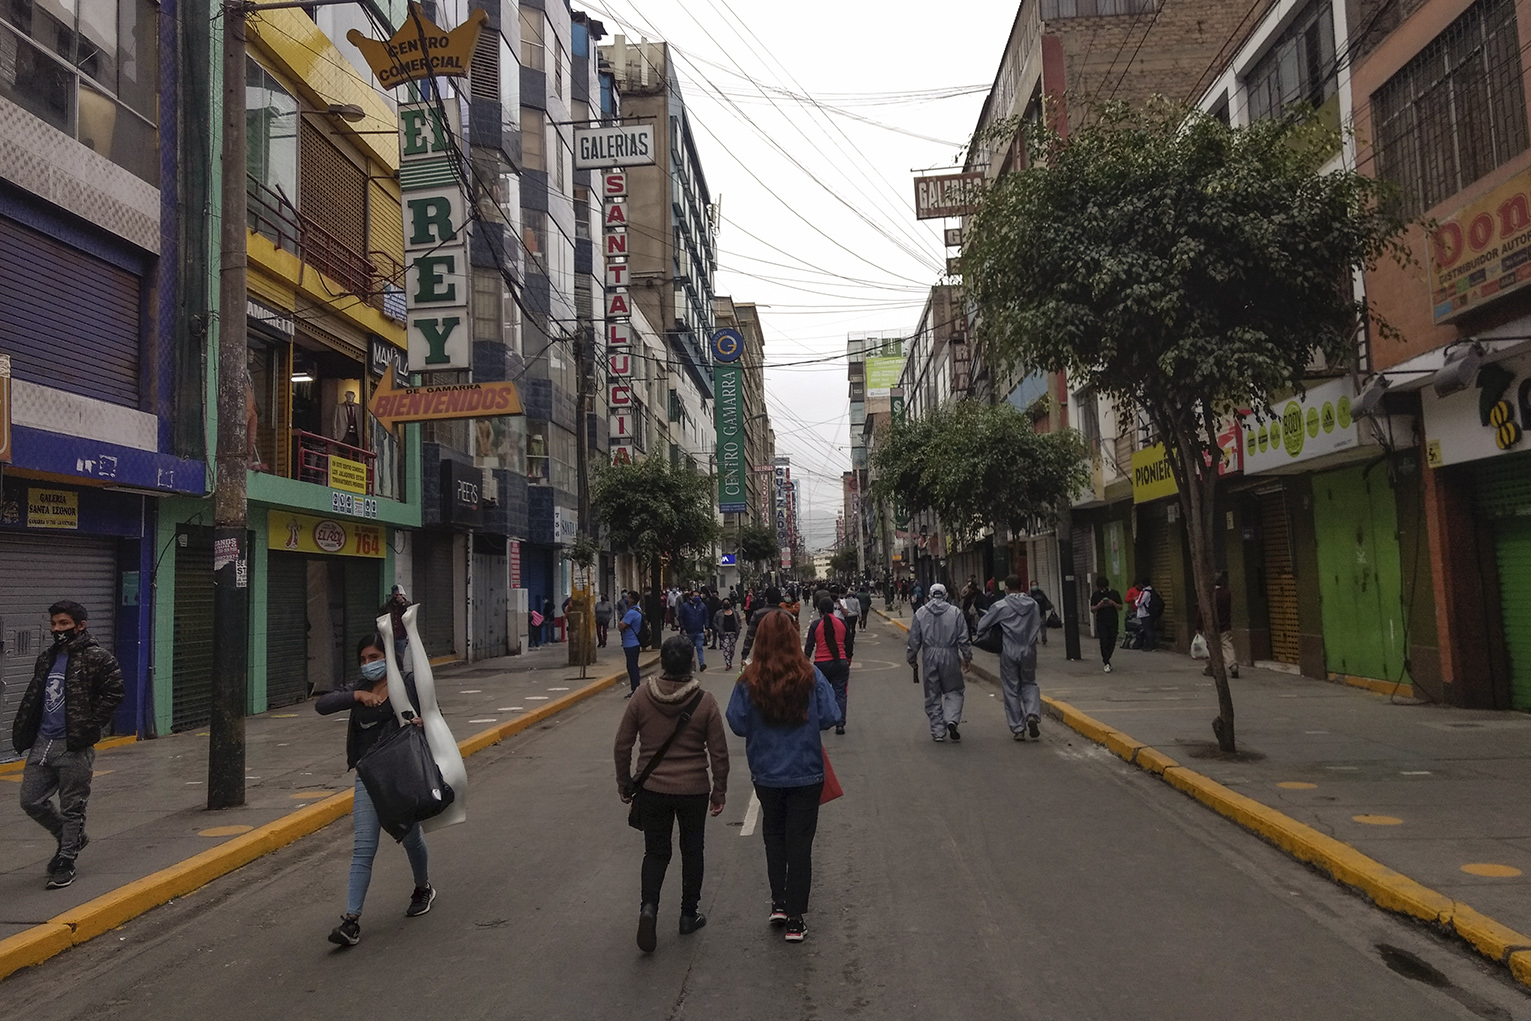 Gamarra, a mini-commercial city in Lima that houses the largest textile conglomerate in Peru